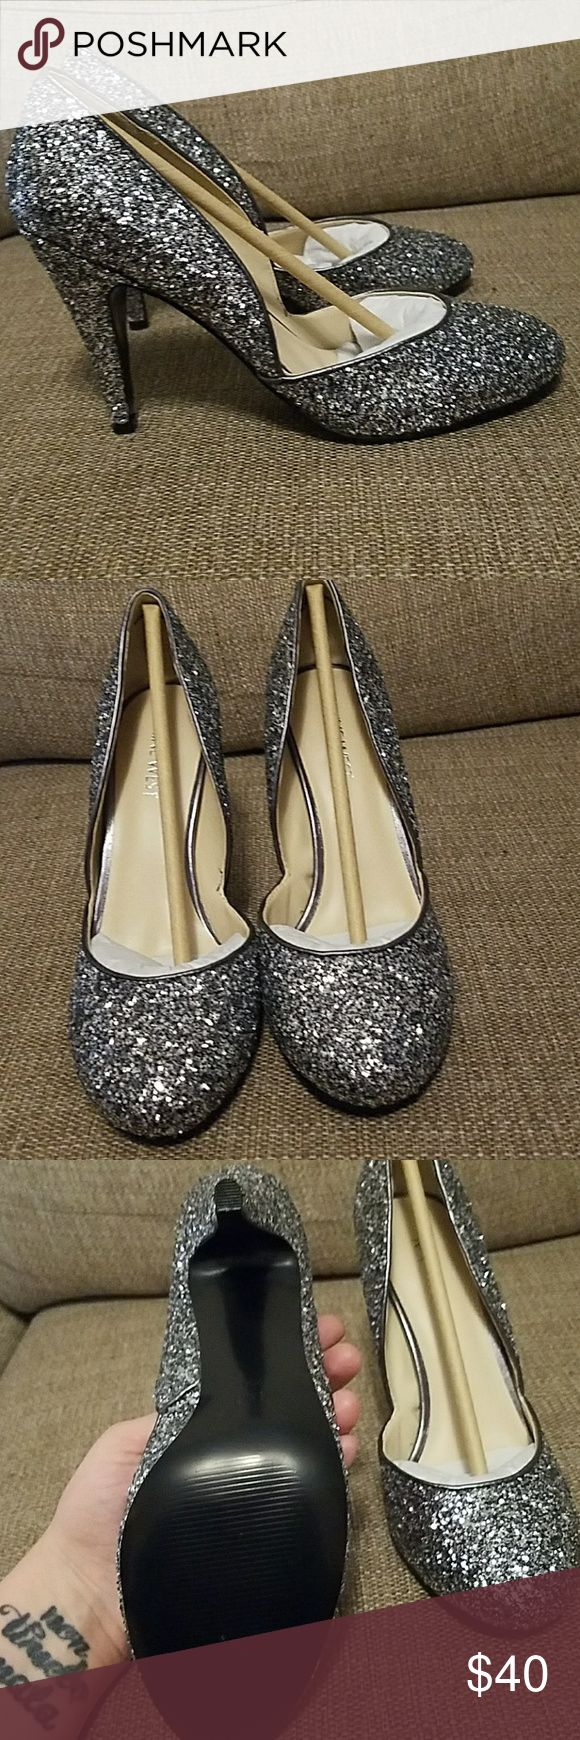 """NWOB Nine West silver glitter heels Very fun and flirty 4"""" silver glitter heels from Nine West. Never worn, I wish I had an occasion to wear them! These are perfect for a party or everyday for the bold! No box, I live in a one bedroom apartment and threw out the box to save space. I am also unsure if they are real leather or not. Nine West Shoes Heels #GlitterHeels"""